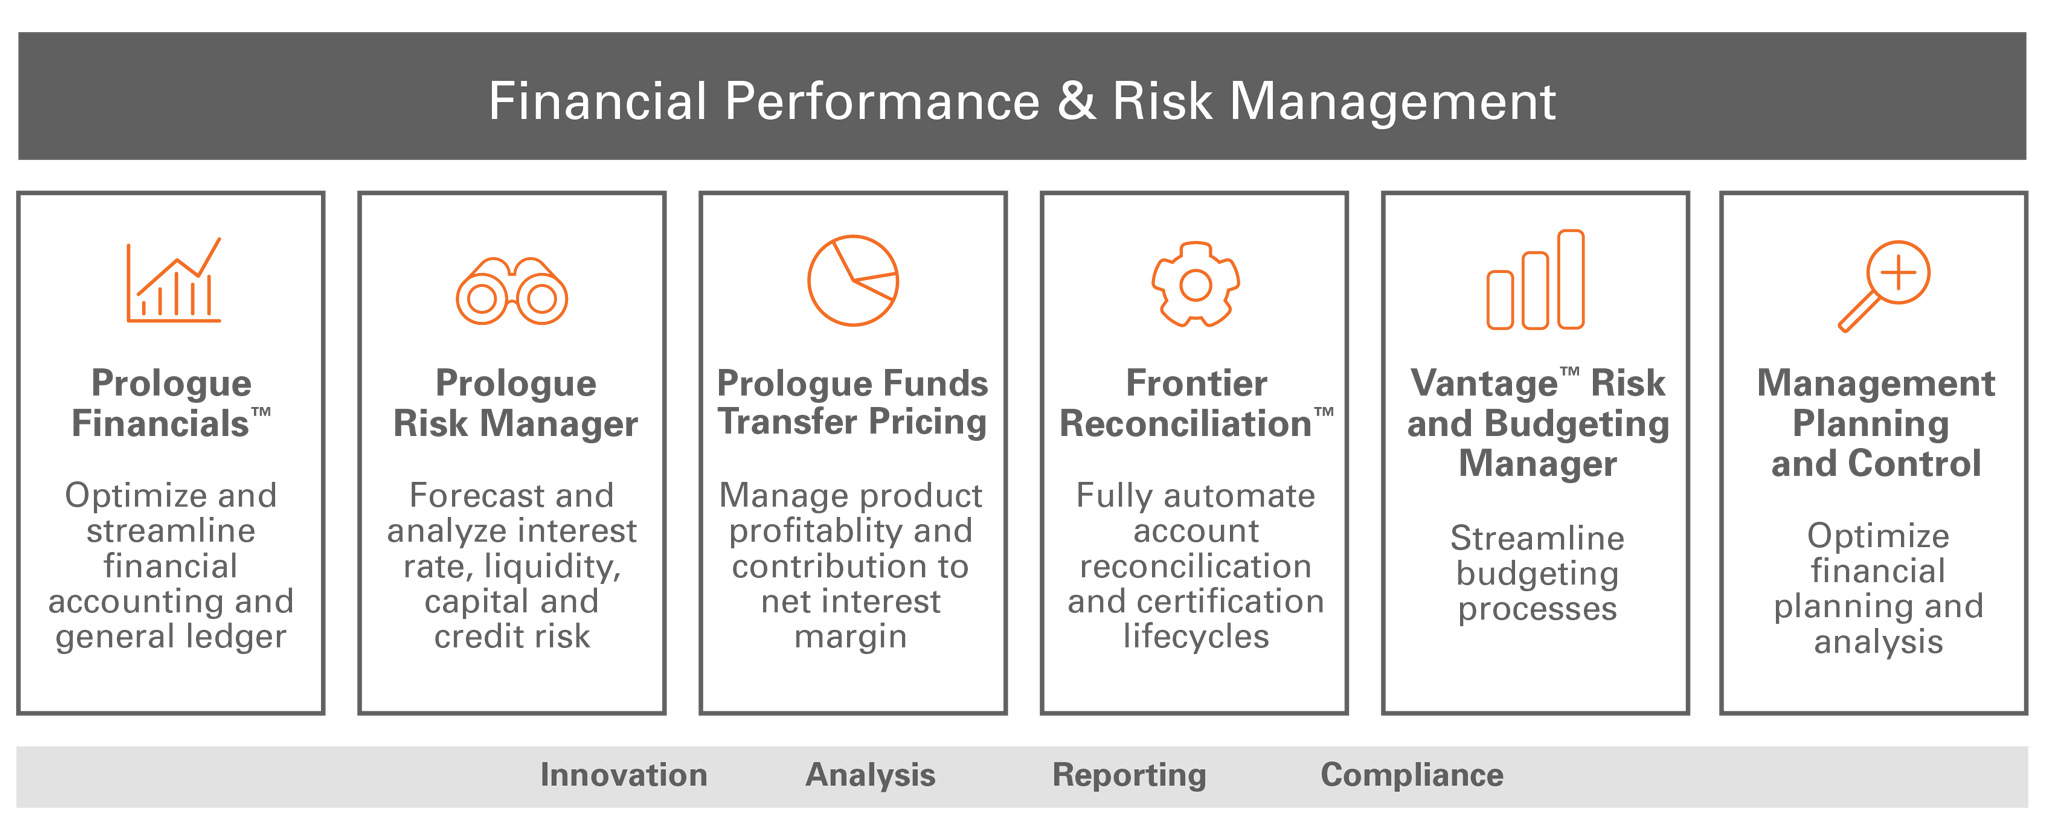 Financial Performance and Risk Management Tools for Analysis, Reporting and Compliance